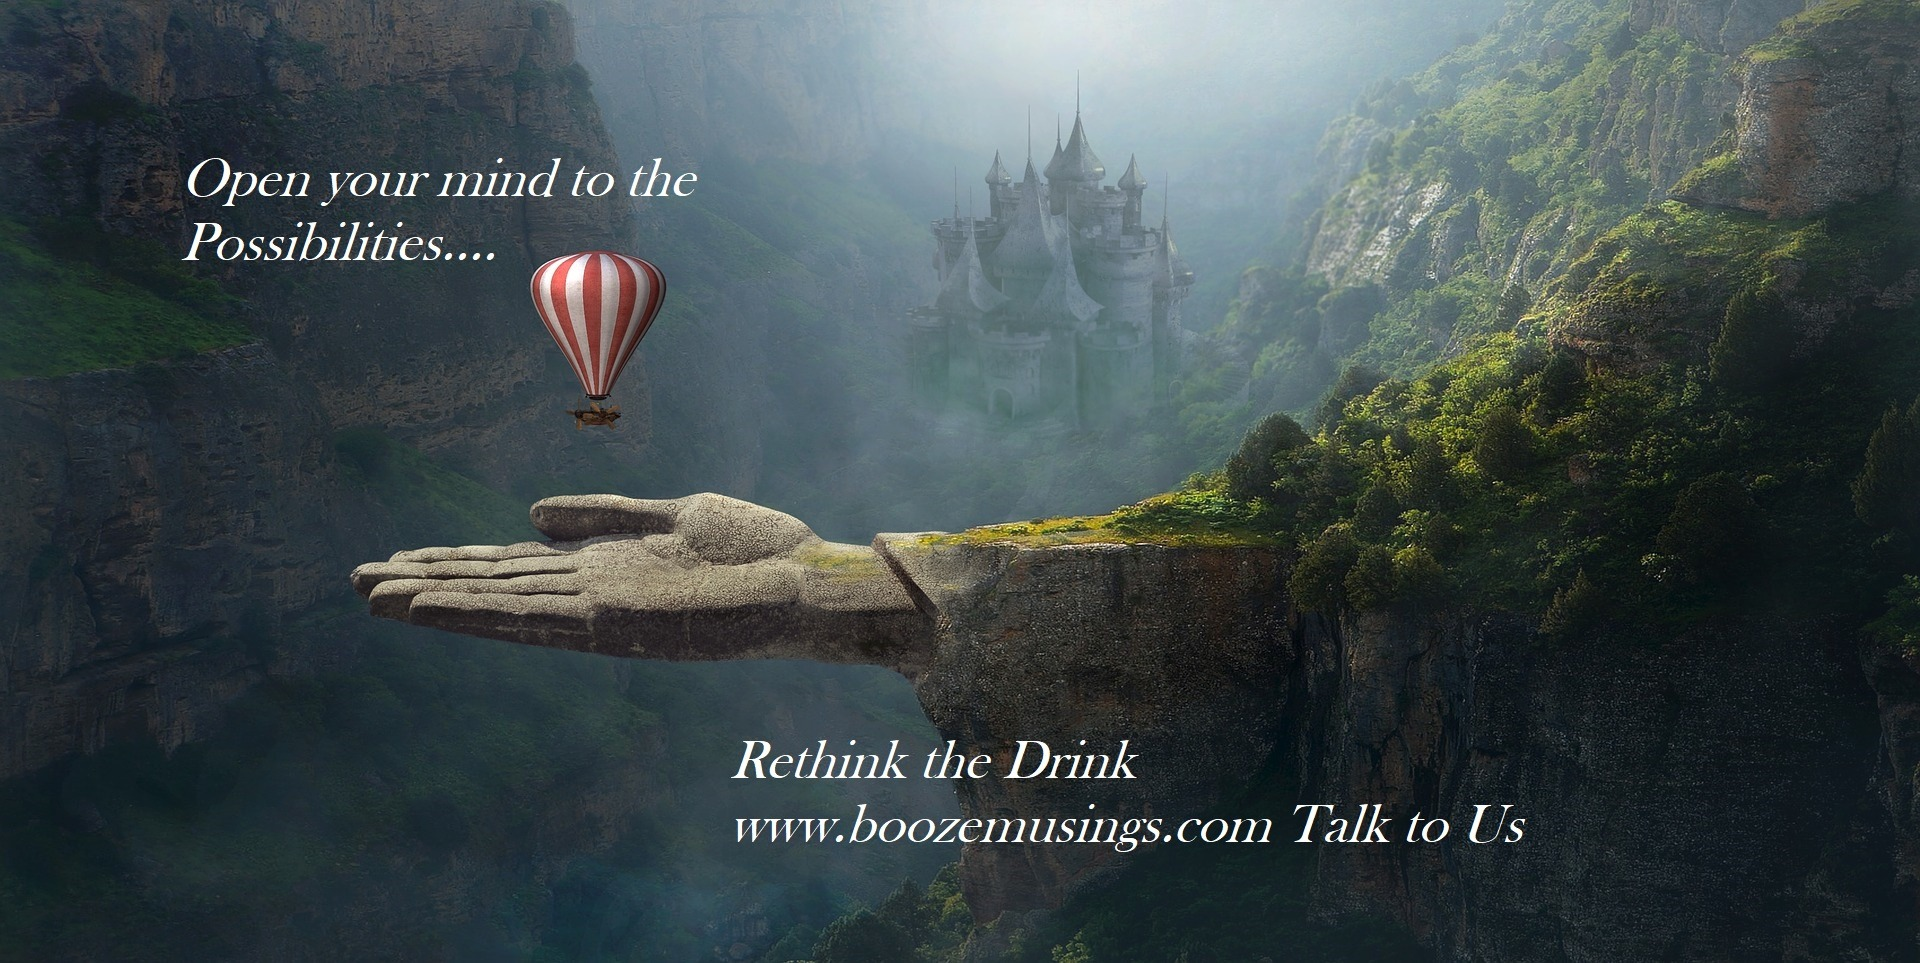 Boozemusings Community Blog and Boom Community Rethink the Drink